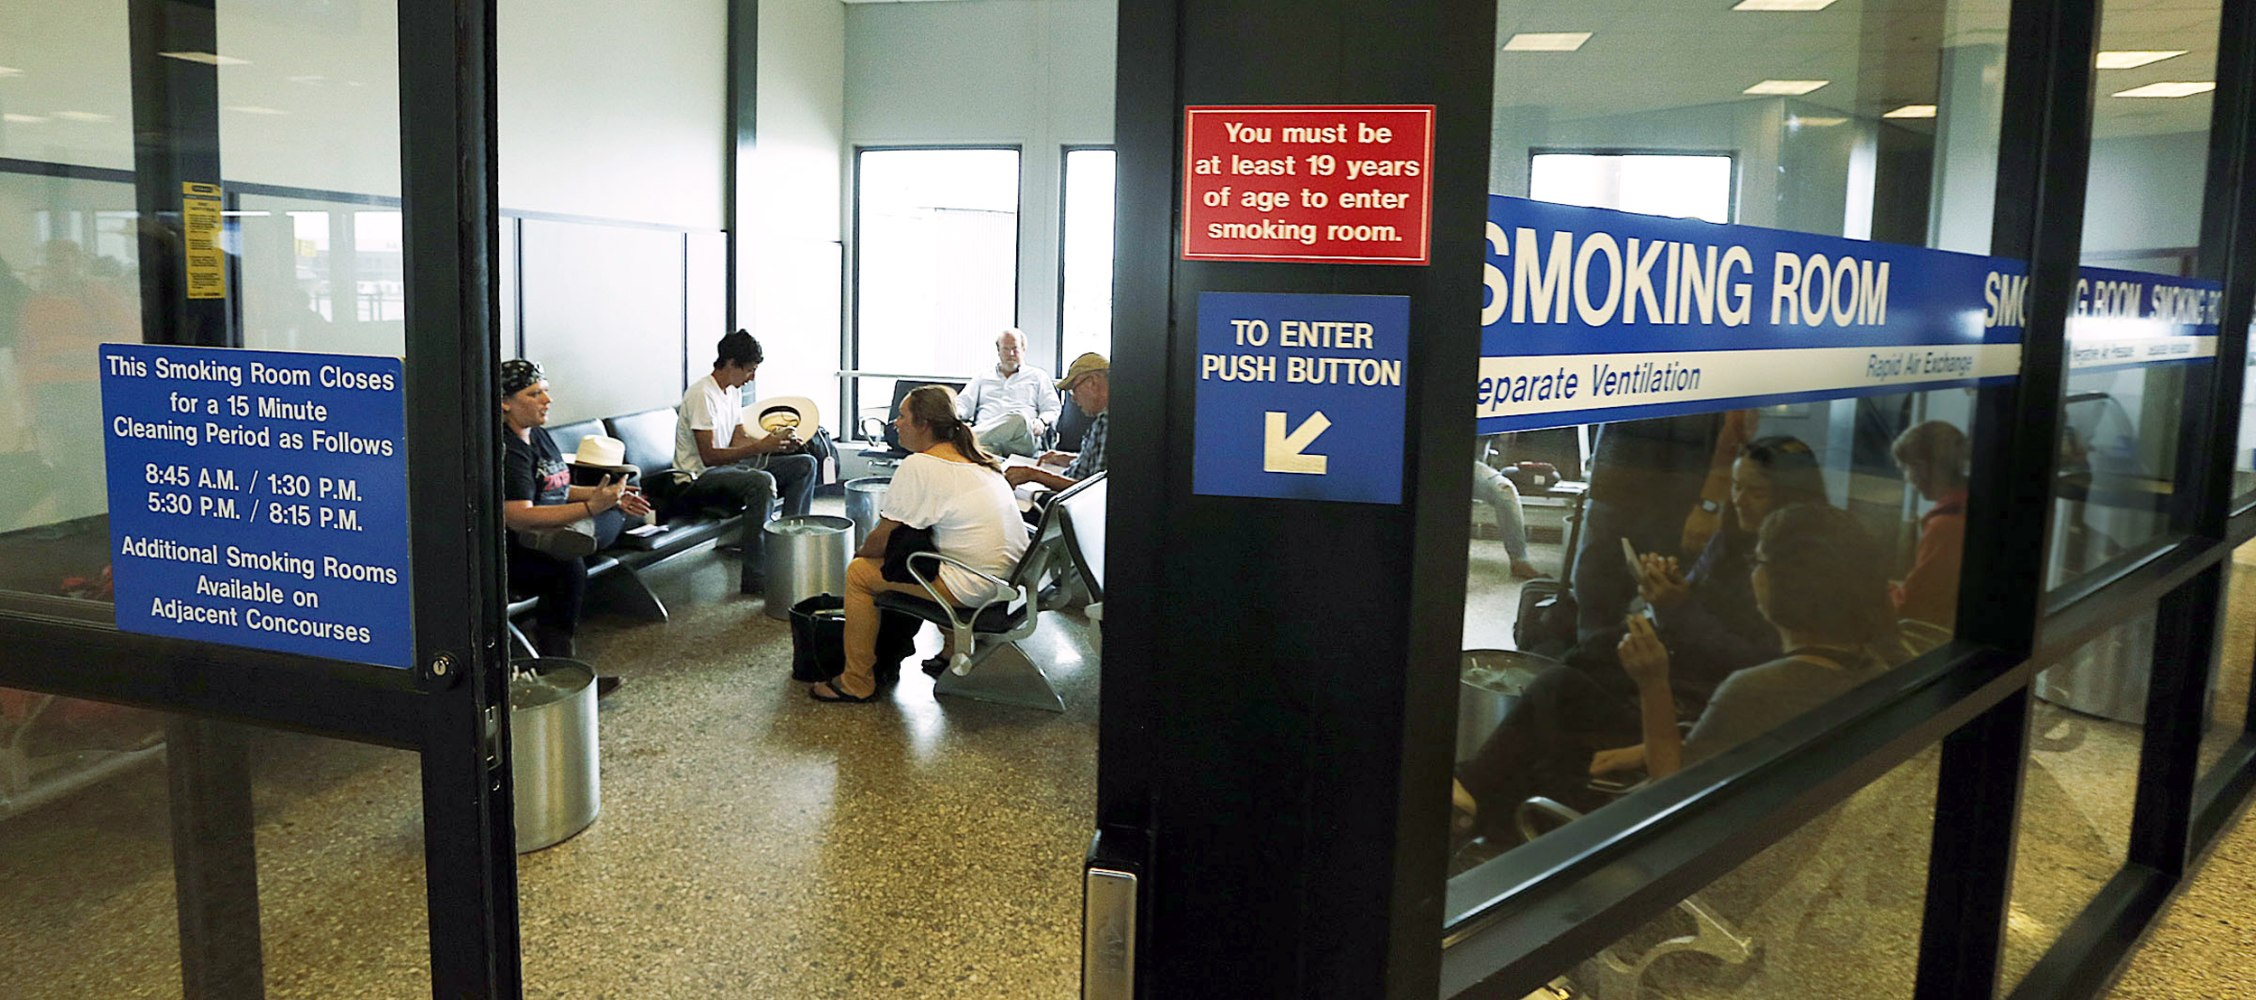 Salt Lake City Snuffing Out Its Post Security Smoking